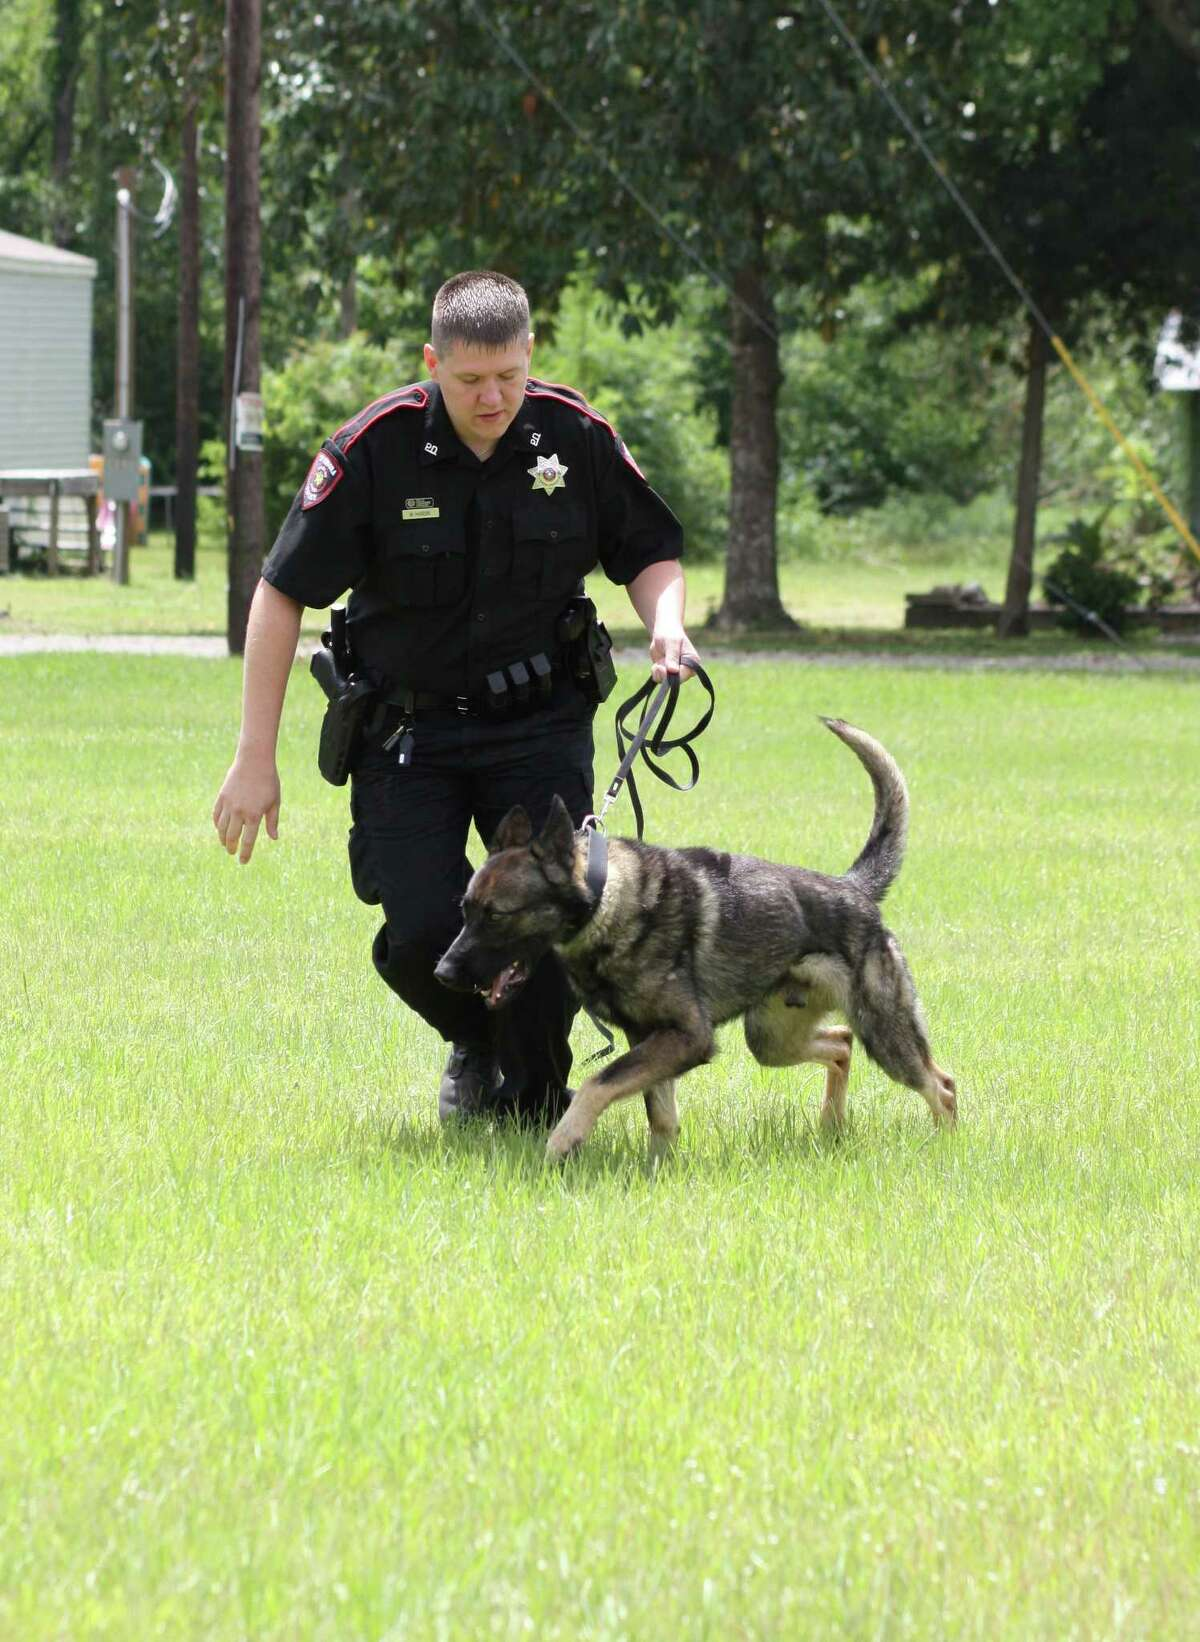 Splendora Police Officer Ray Hardin exercises his K-9 partner, A.D. The two were paired up a week ago and have a few more weeks of training ahead before they can begin conducting narcotics interdiction on US 59.